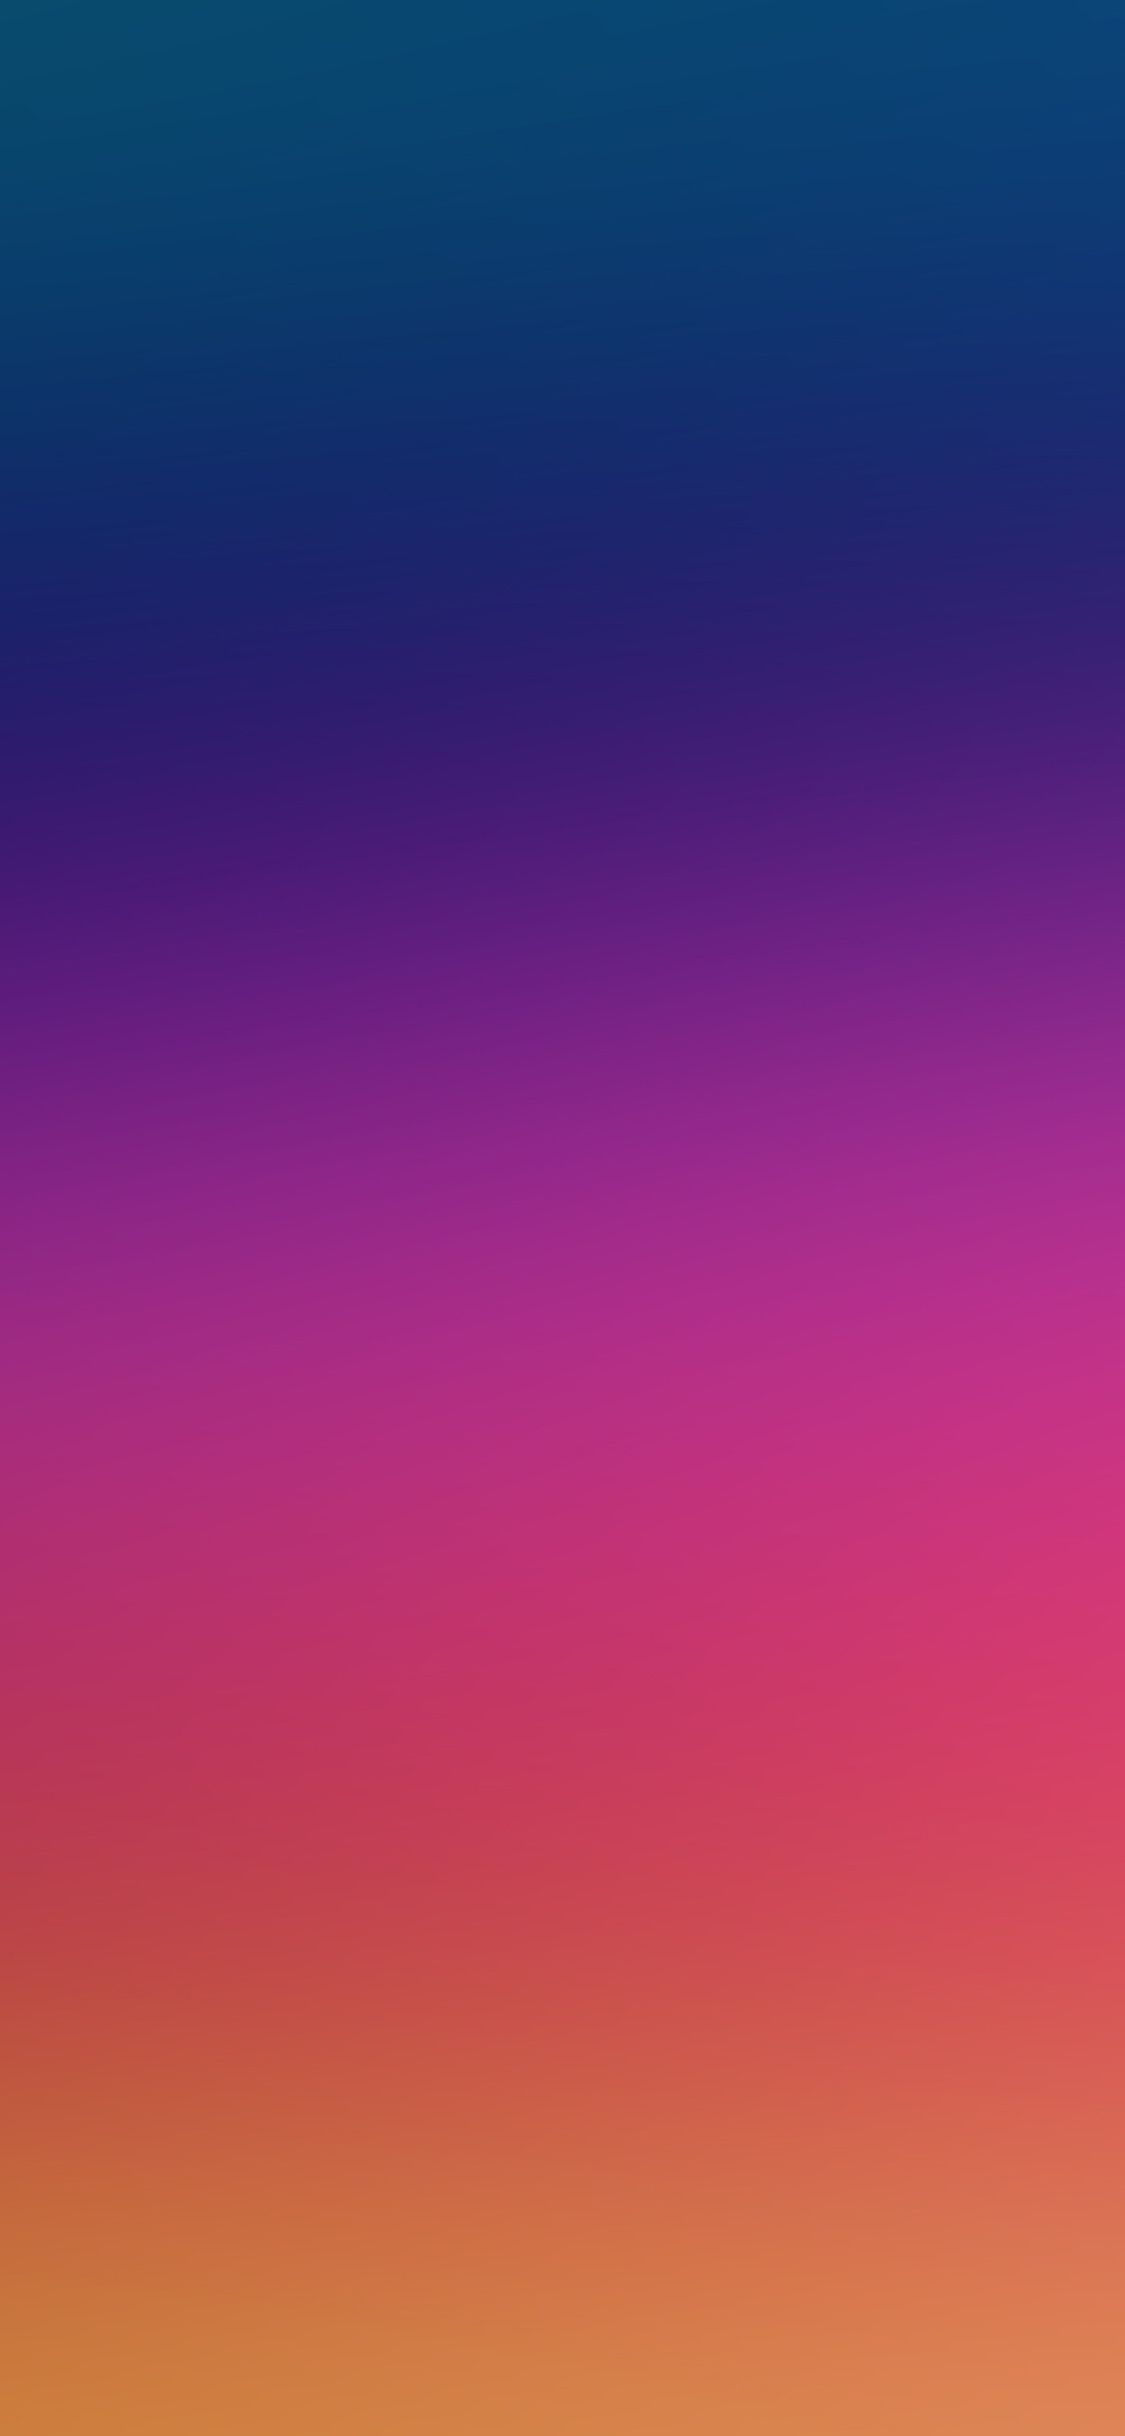 iPhoneXpapers.com-Apple-iPhone-wallpaper-sg56-art-of-joy-gradation-blur